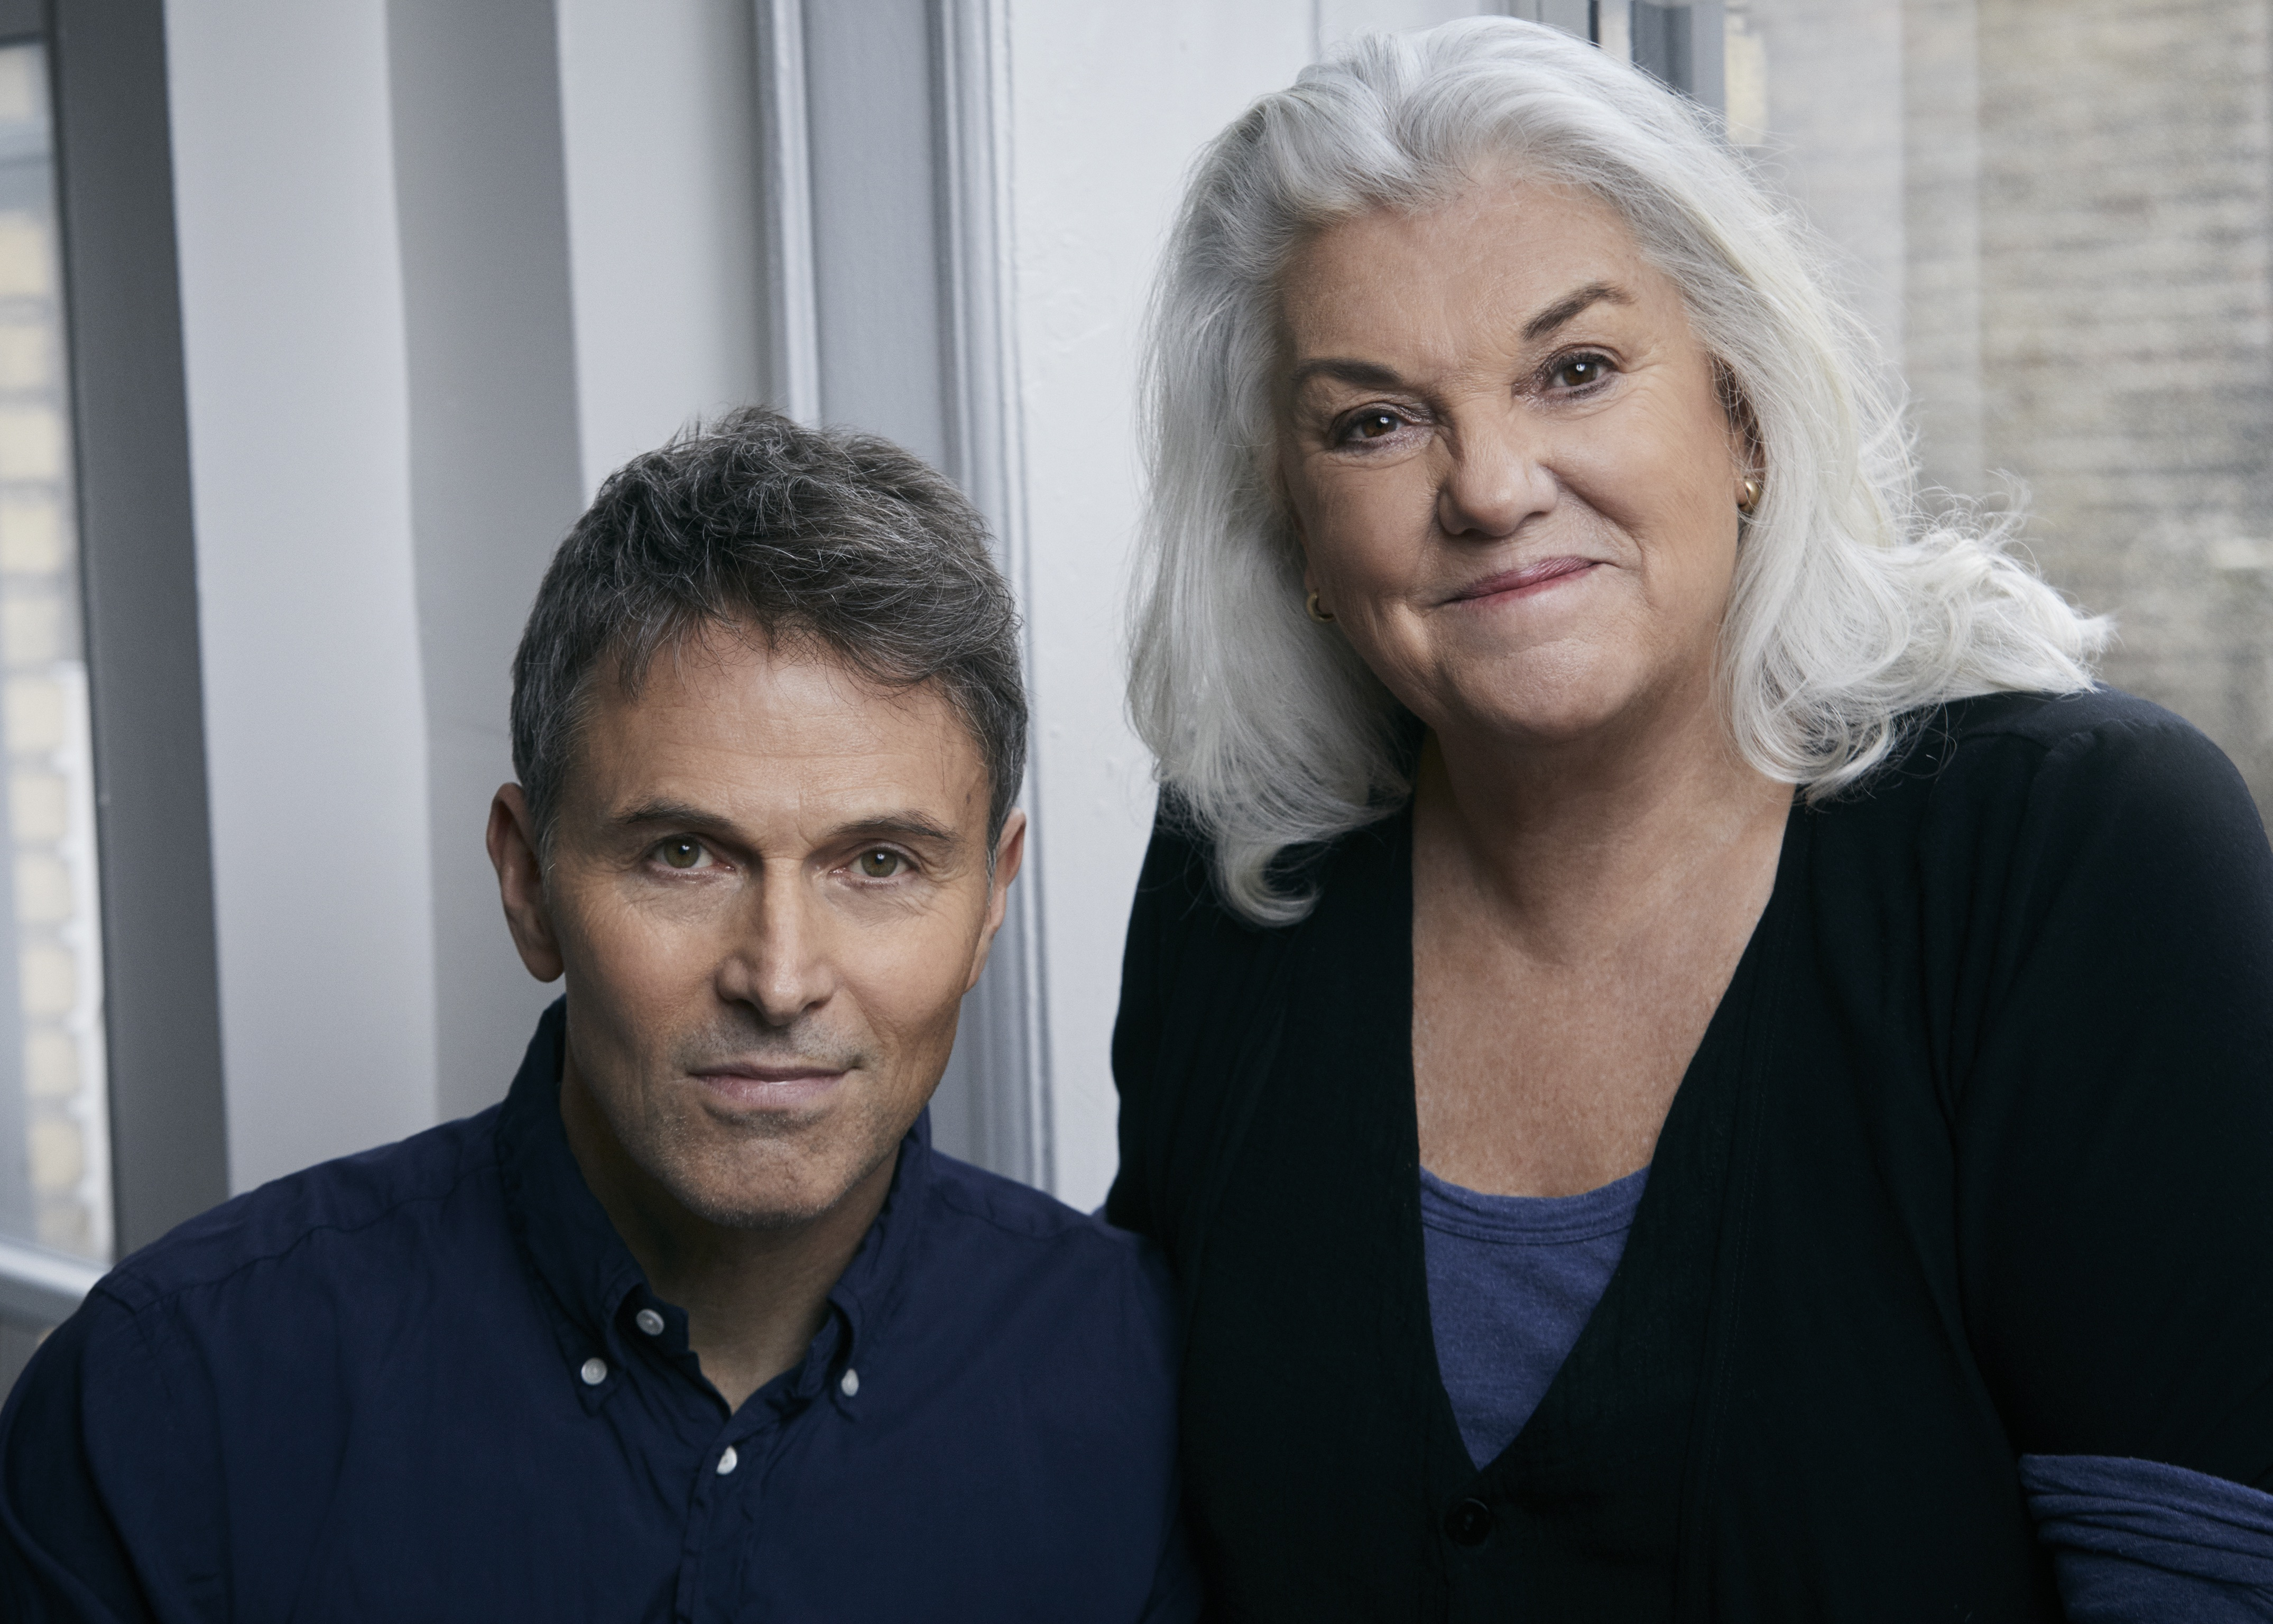 Discussion on this topic: Monica Vera, tyne-daly/